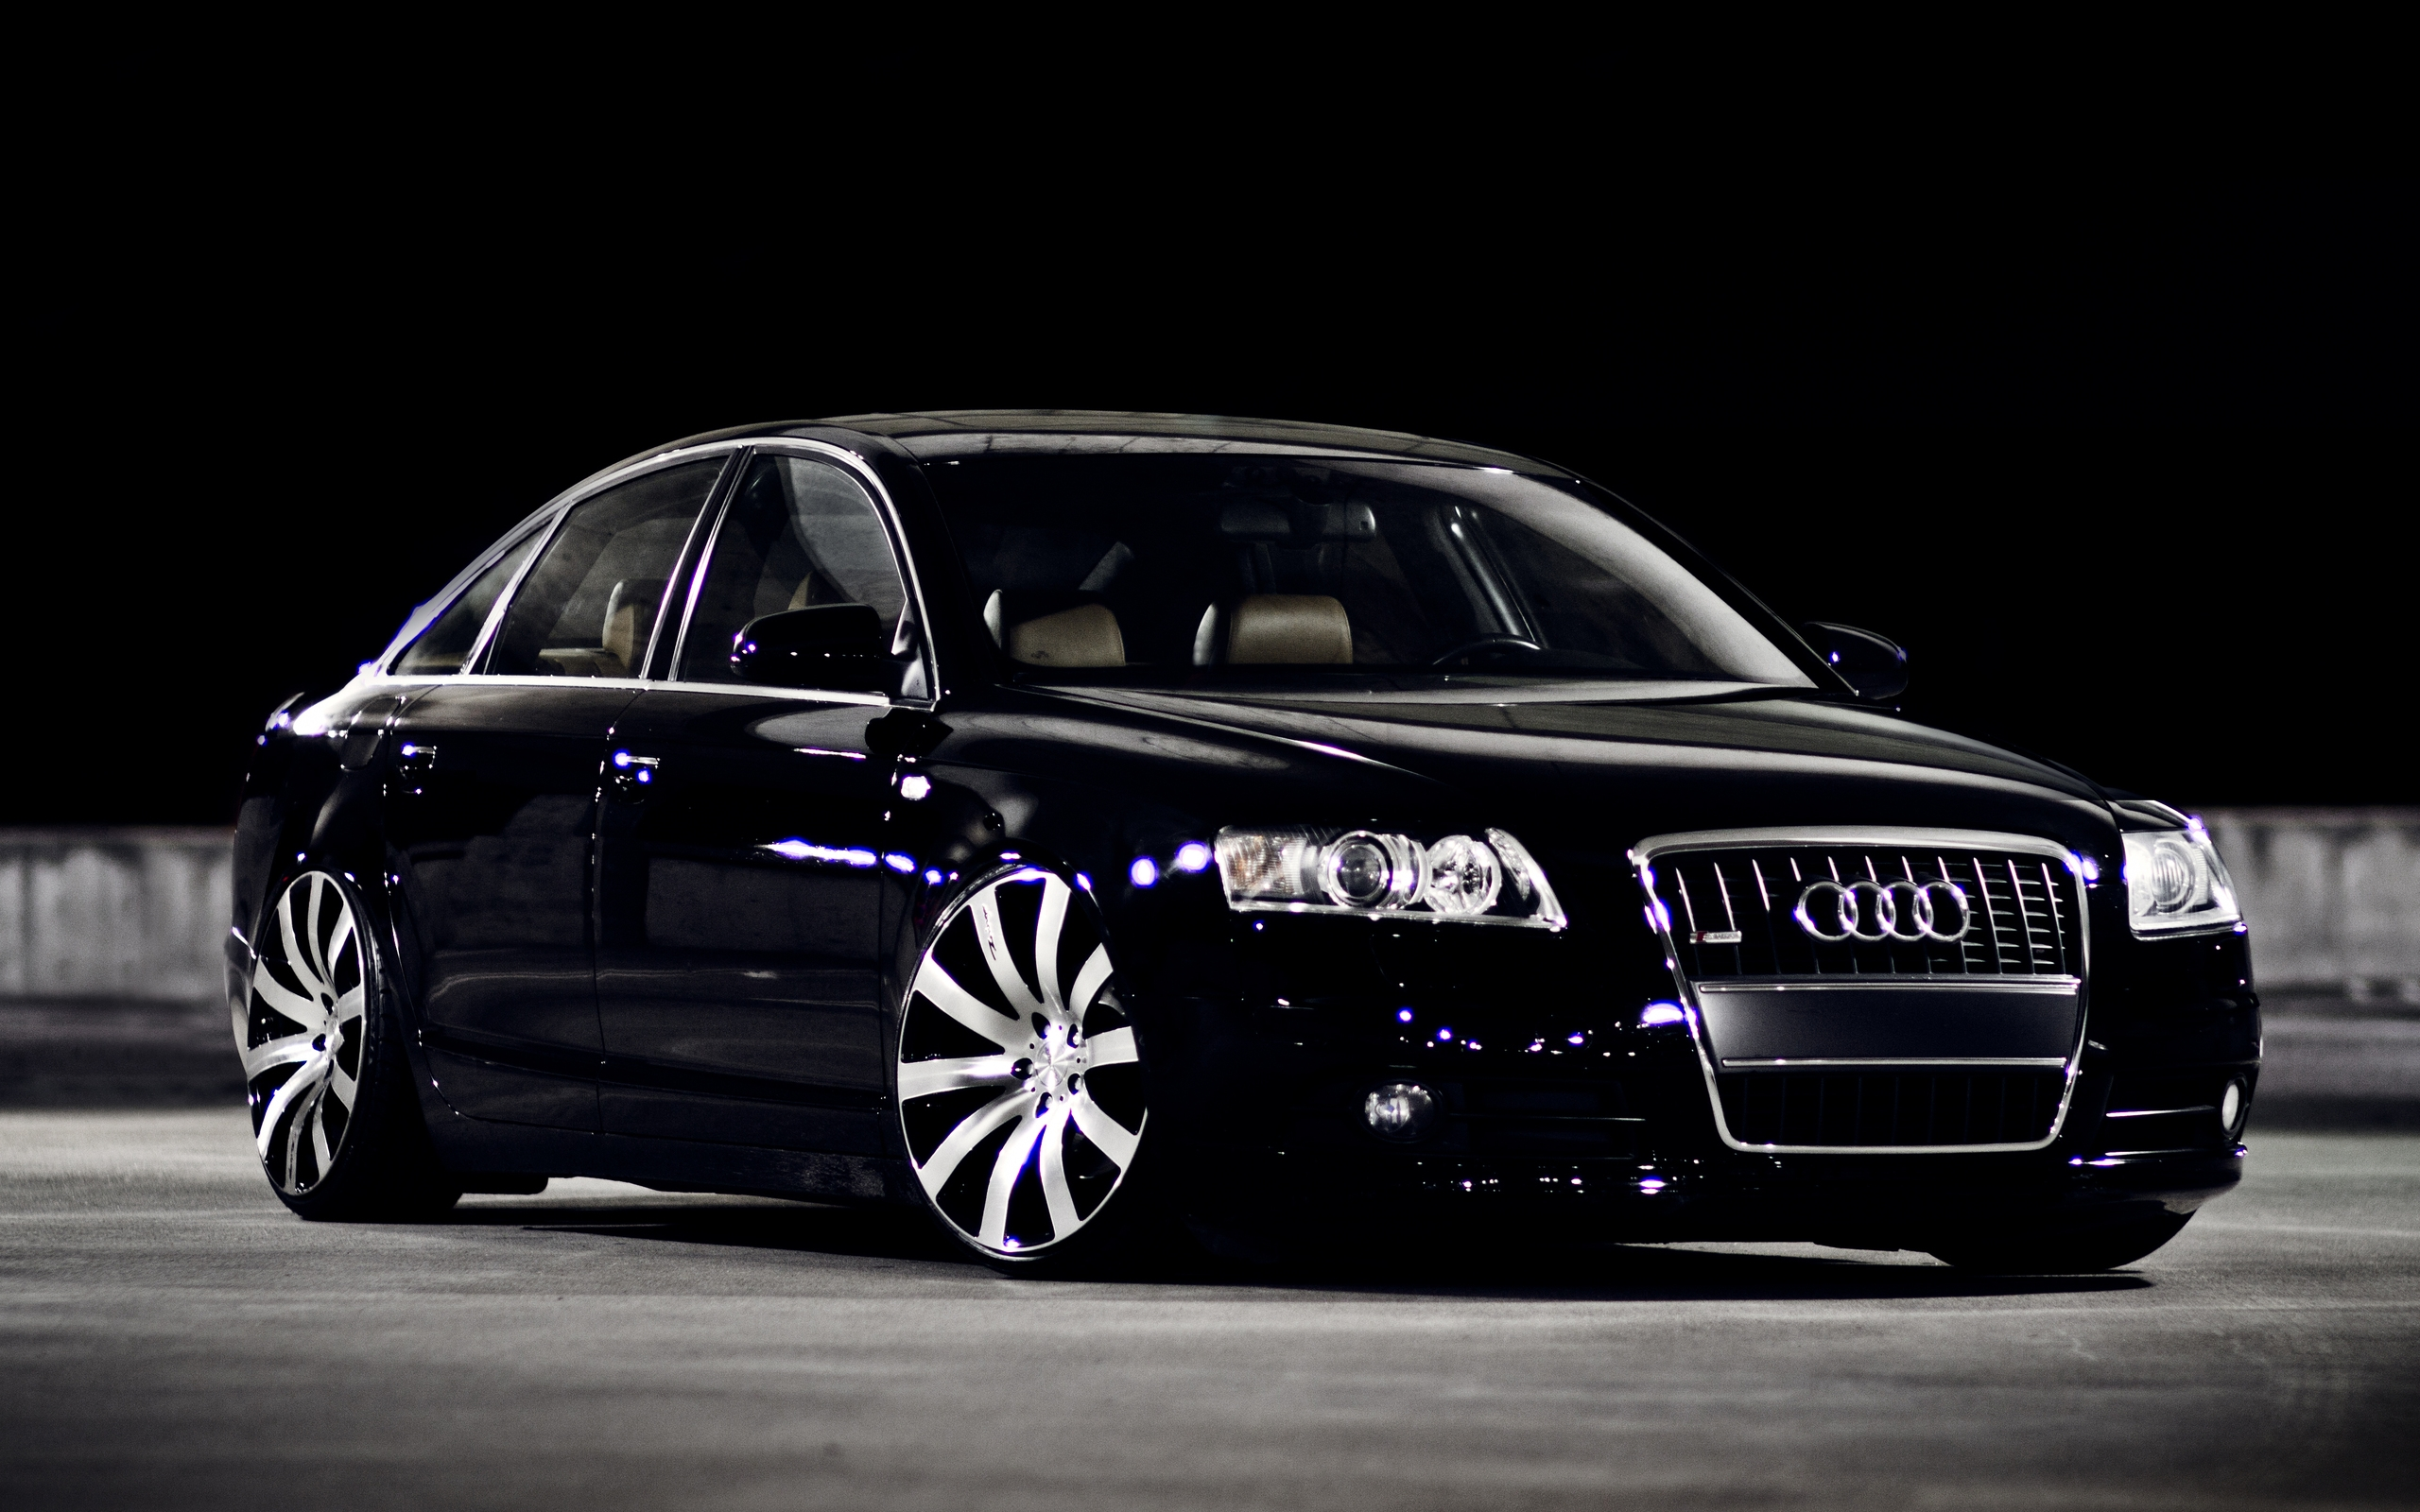 Cool HD Audi Wallpapers For Free Download - Audi car background